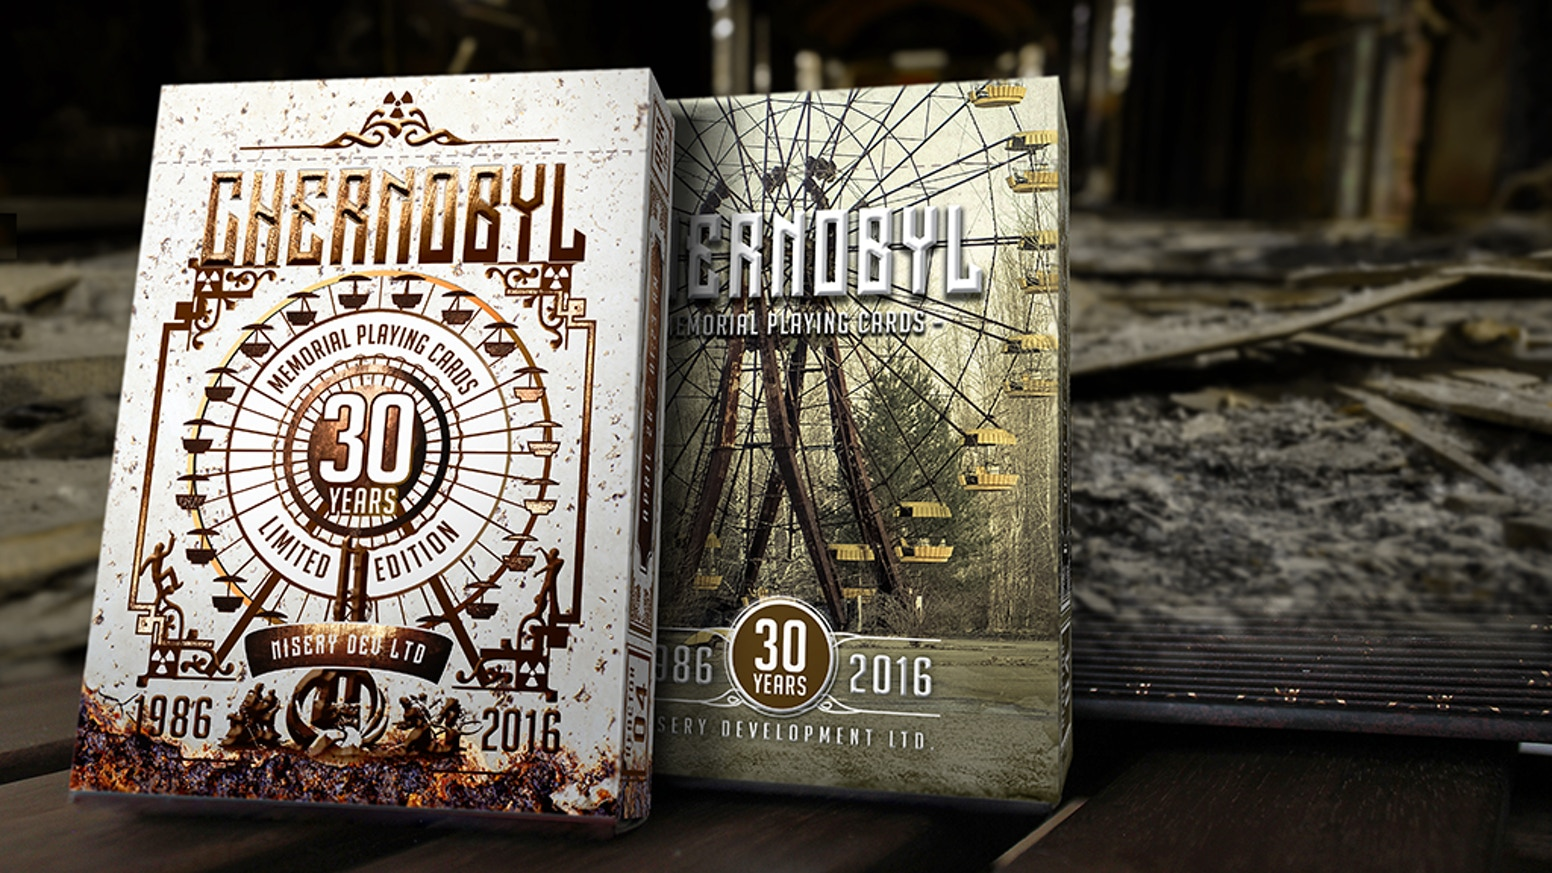 Quality poker playing cards w. unique features, commemorating the population affected by the Chernobyl accident in 1986 - 30 years ago.